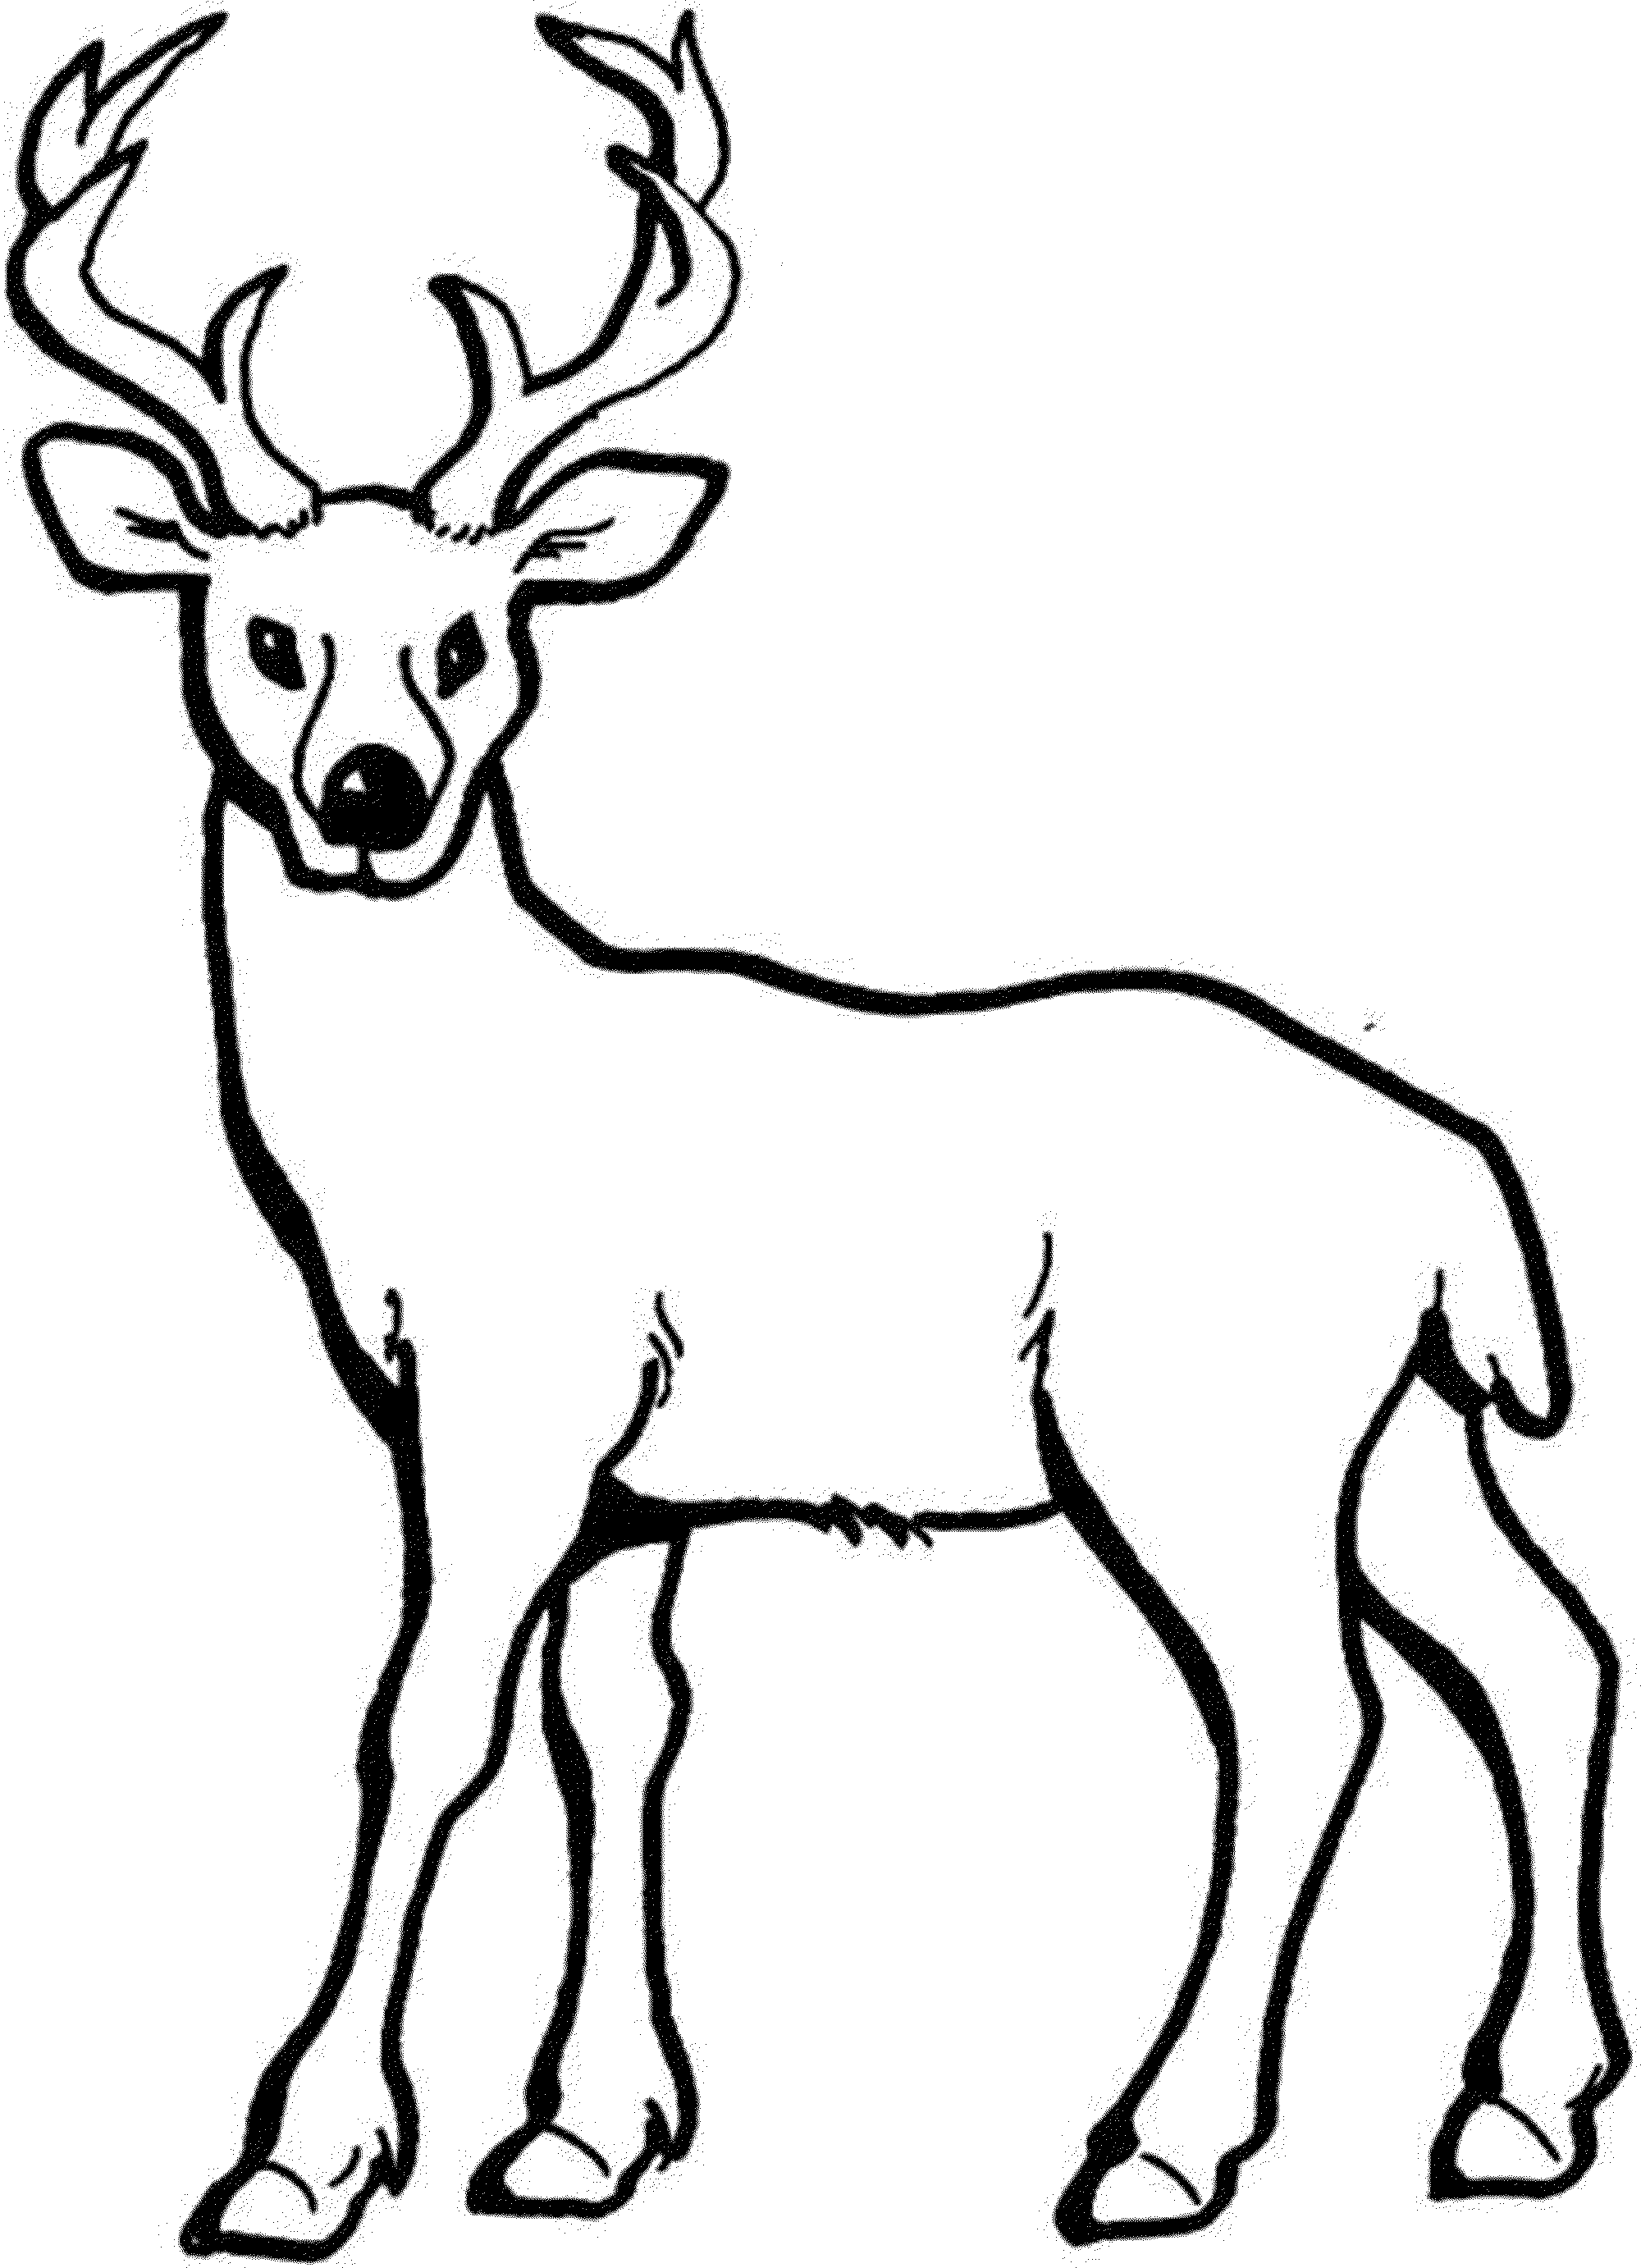 deer coloring sheet printable coloring pages for adults 15 free designs coloring sheet deer